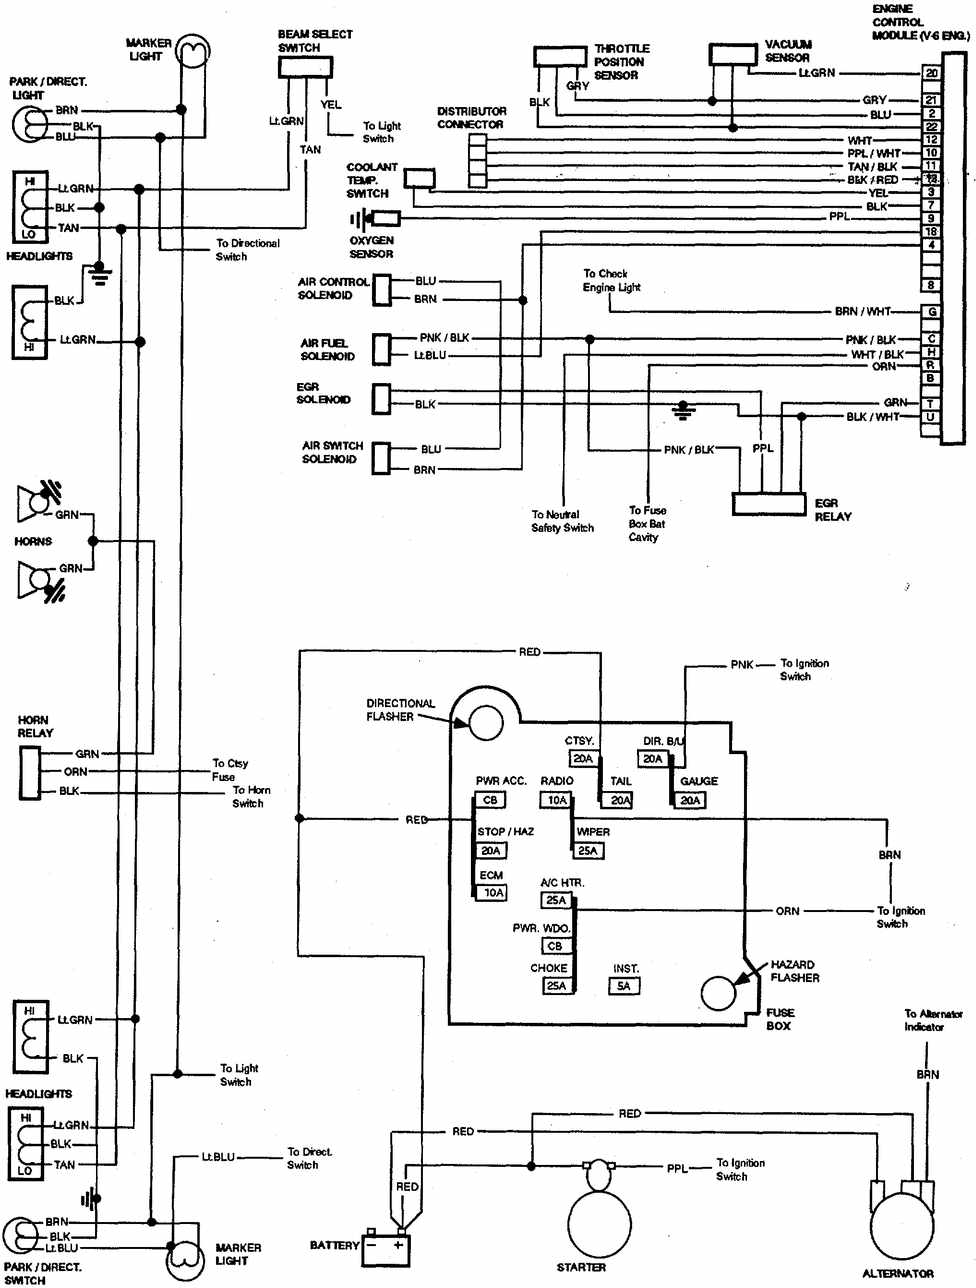 medium resolution of chevrolet v8 trucks 1981 1987 electrical wiring diagram 1986 k5 blazer fuse box diagram 1984 k5